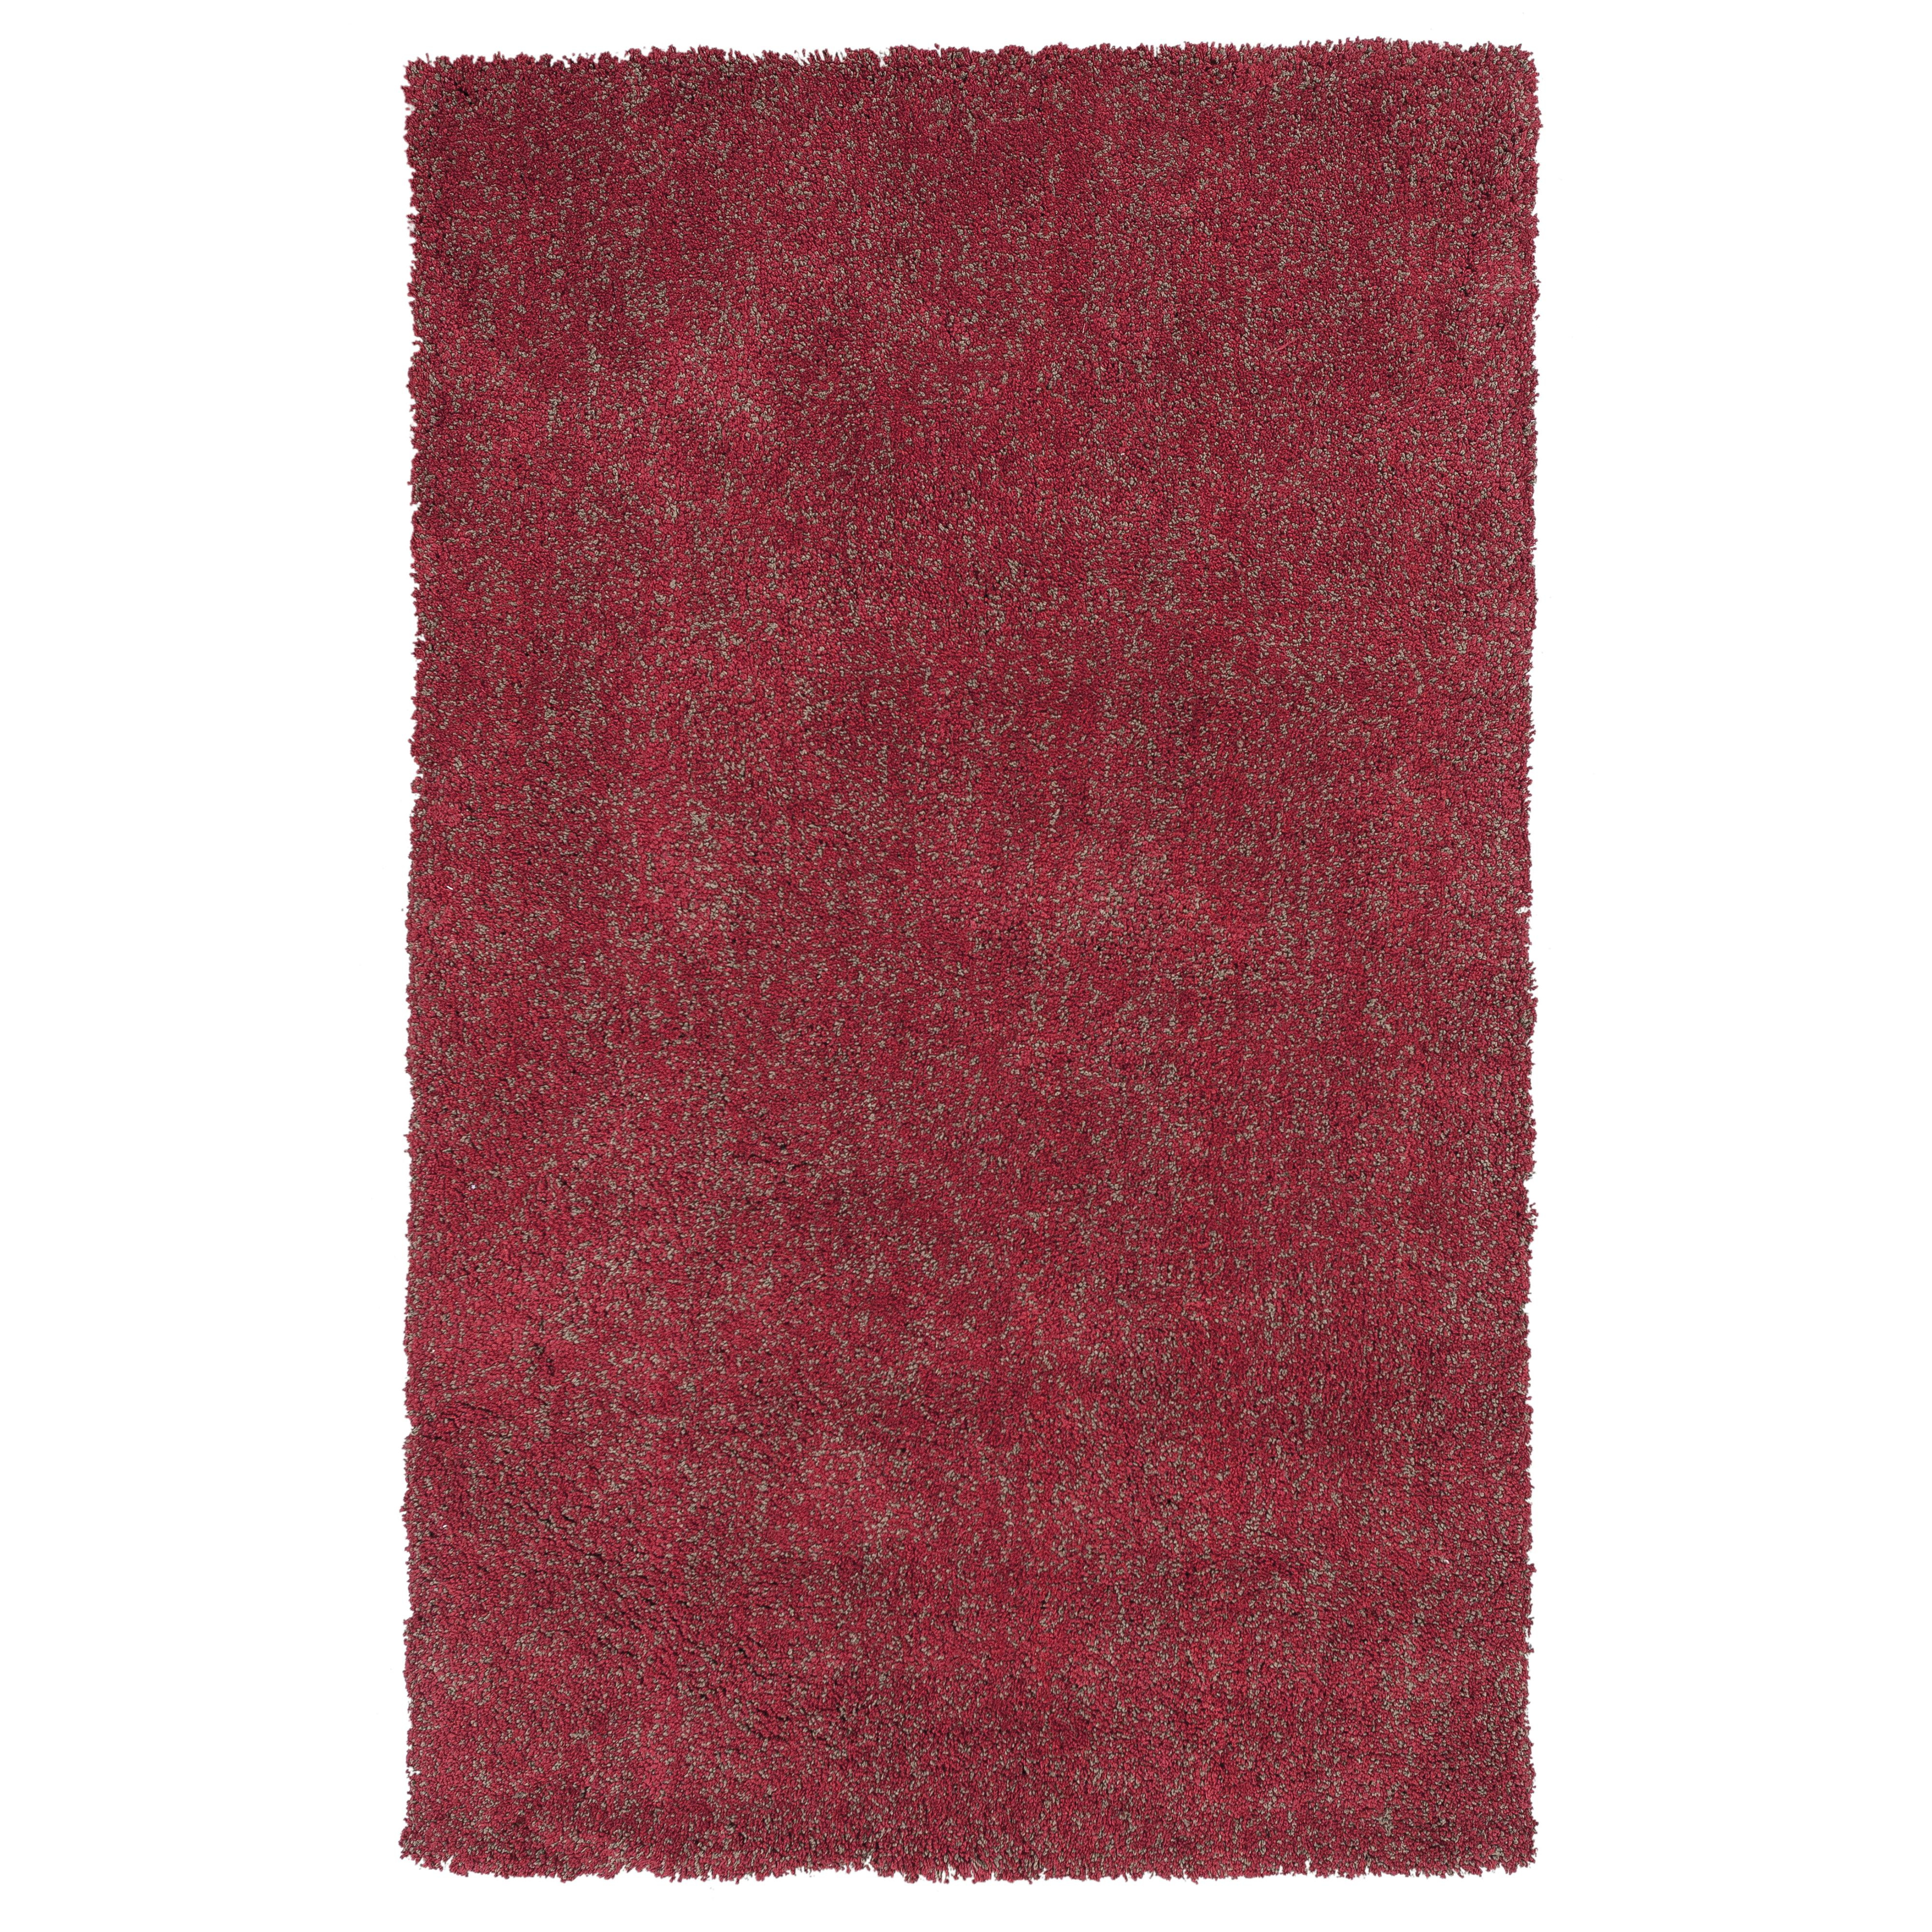 "Bliss 3'3"" X 5'3"" Rug by Kas at Wilson's Furniture"